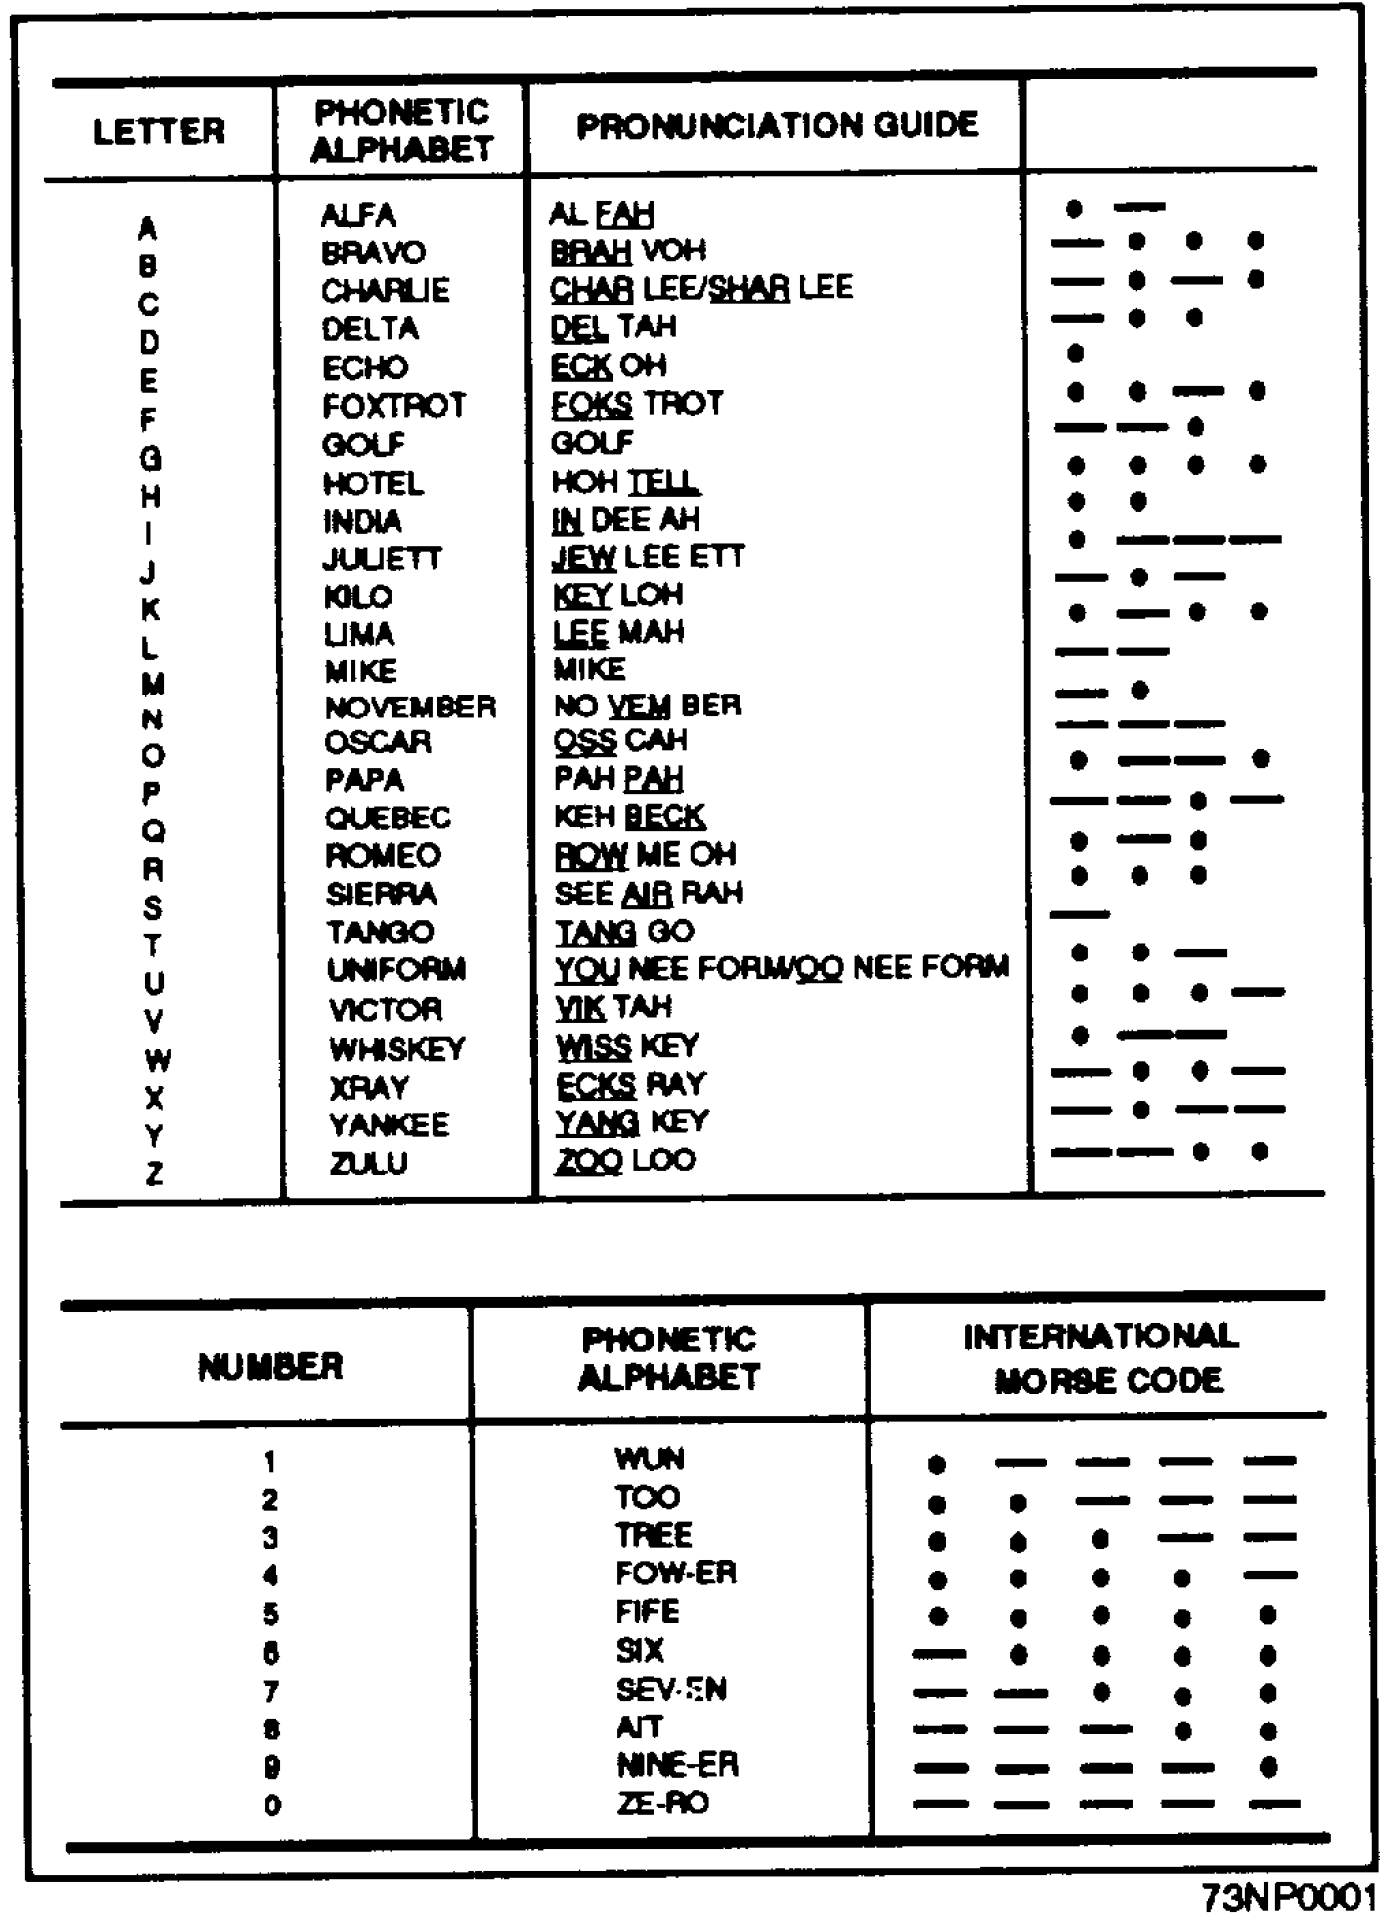 Allied Military Phonetic Spelling Alphabets Wikipedia